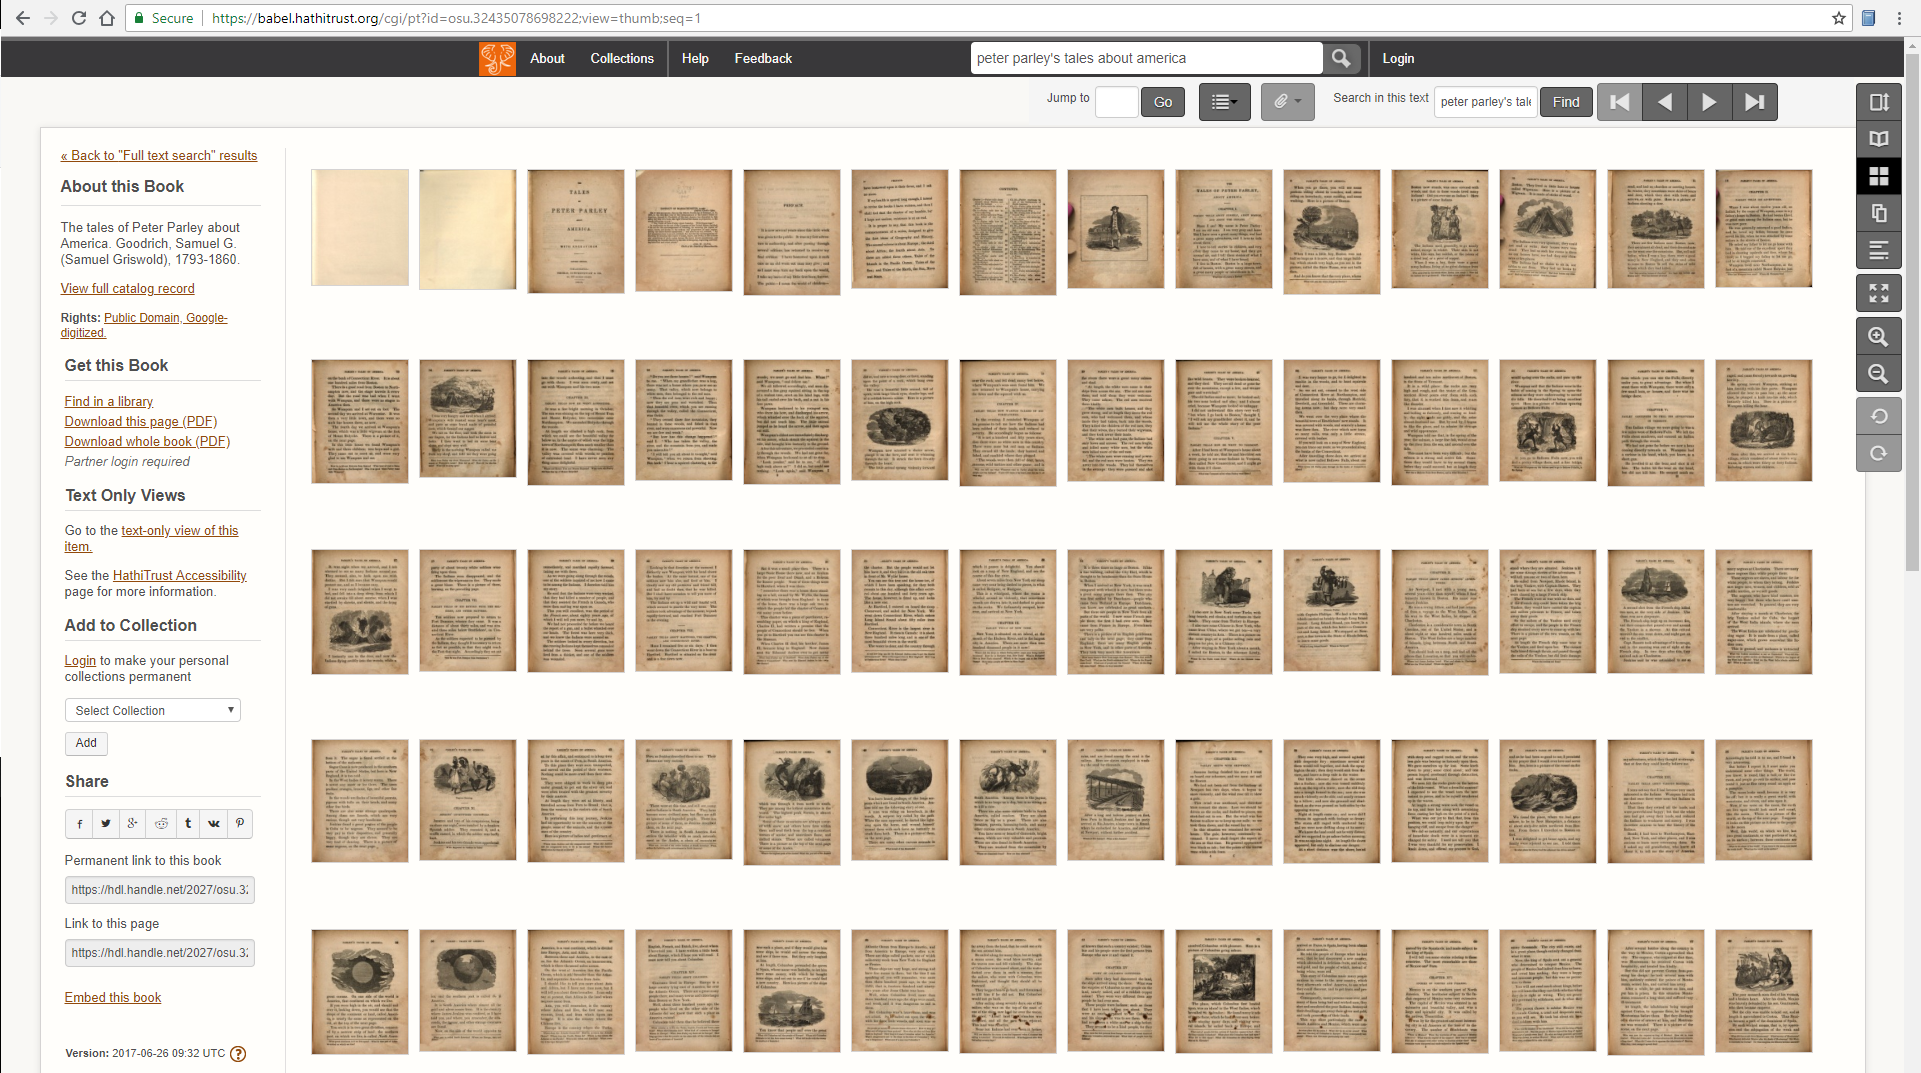 View of HathiTrust thumbnails for all pages.